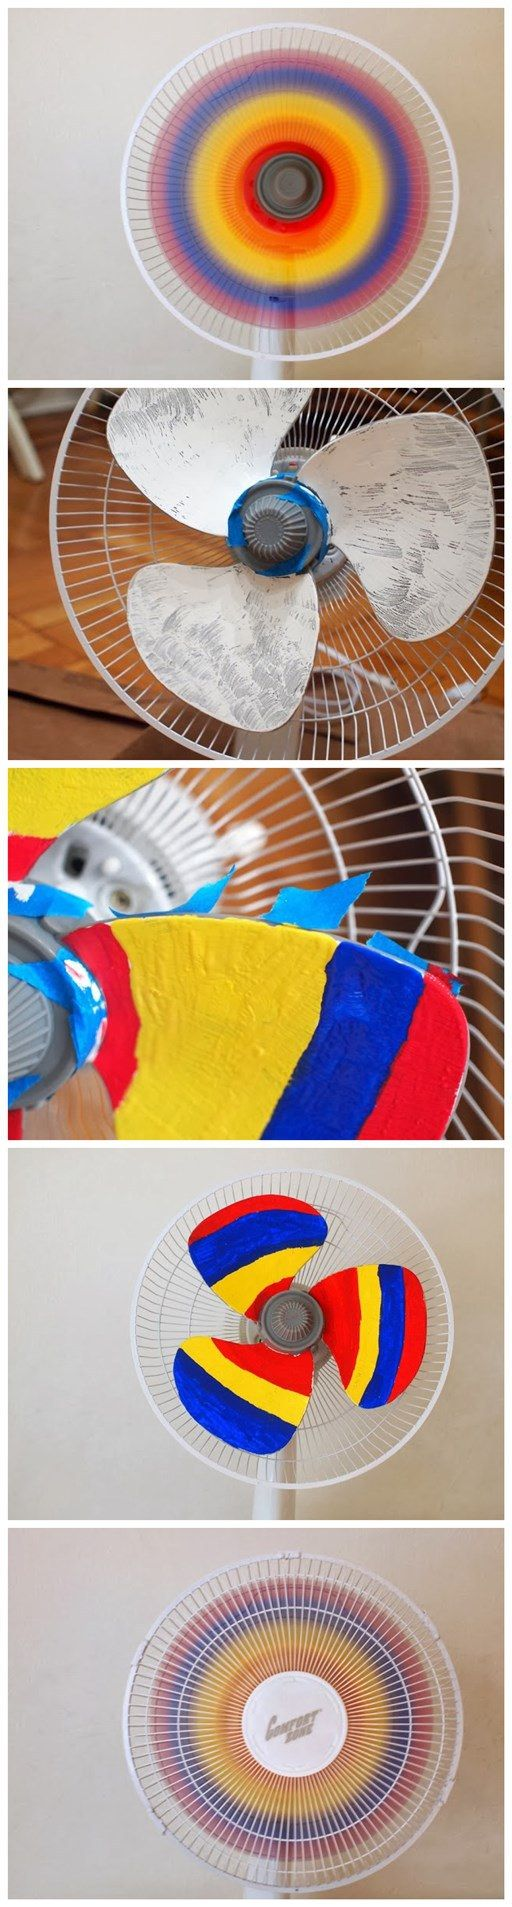 DIY Rainbow Fan, but with colored duct tape, being mindful of the blades spin direction when applying...